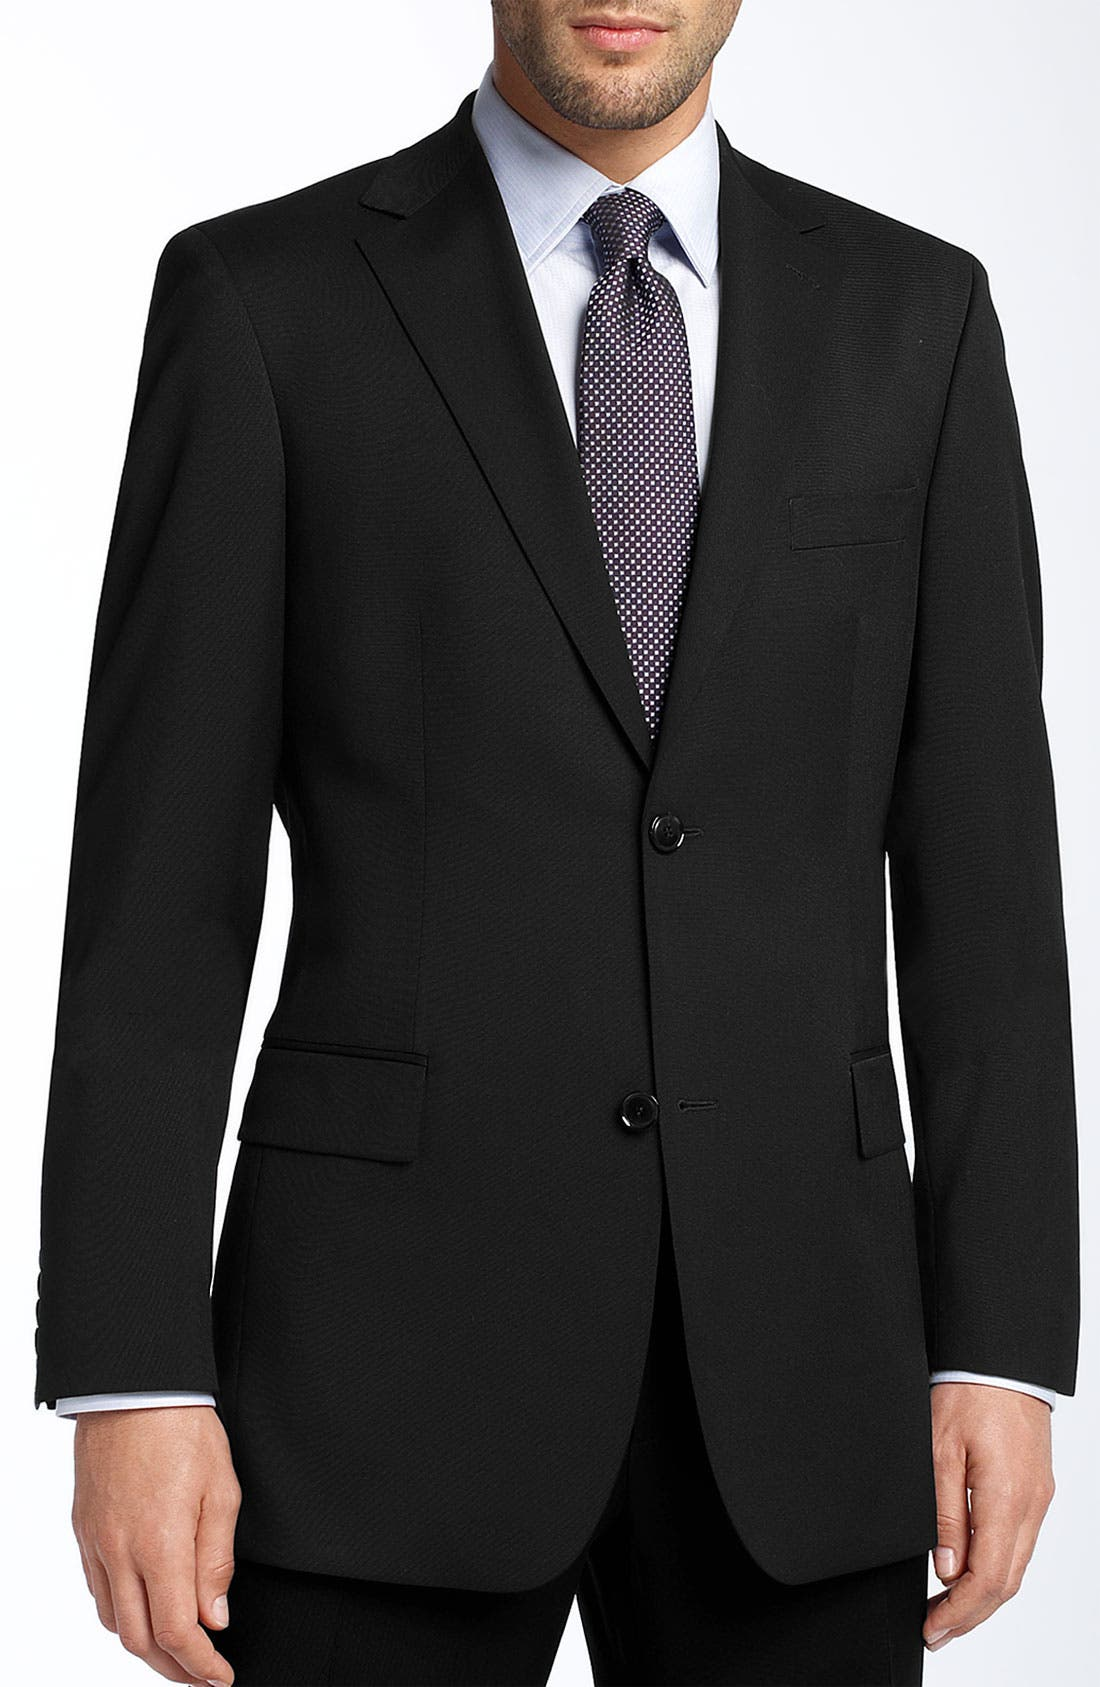 Main Image - BOSS HUGO BOSS 'Pasolini' Black Virgin Wool Sportcoat